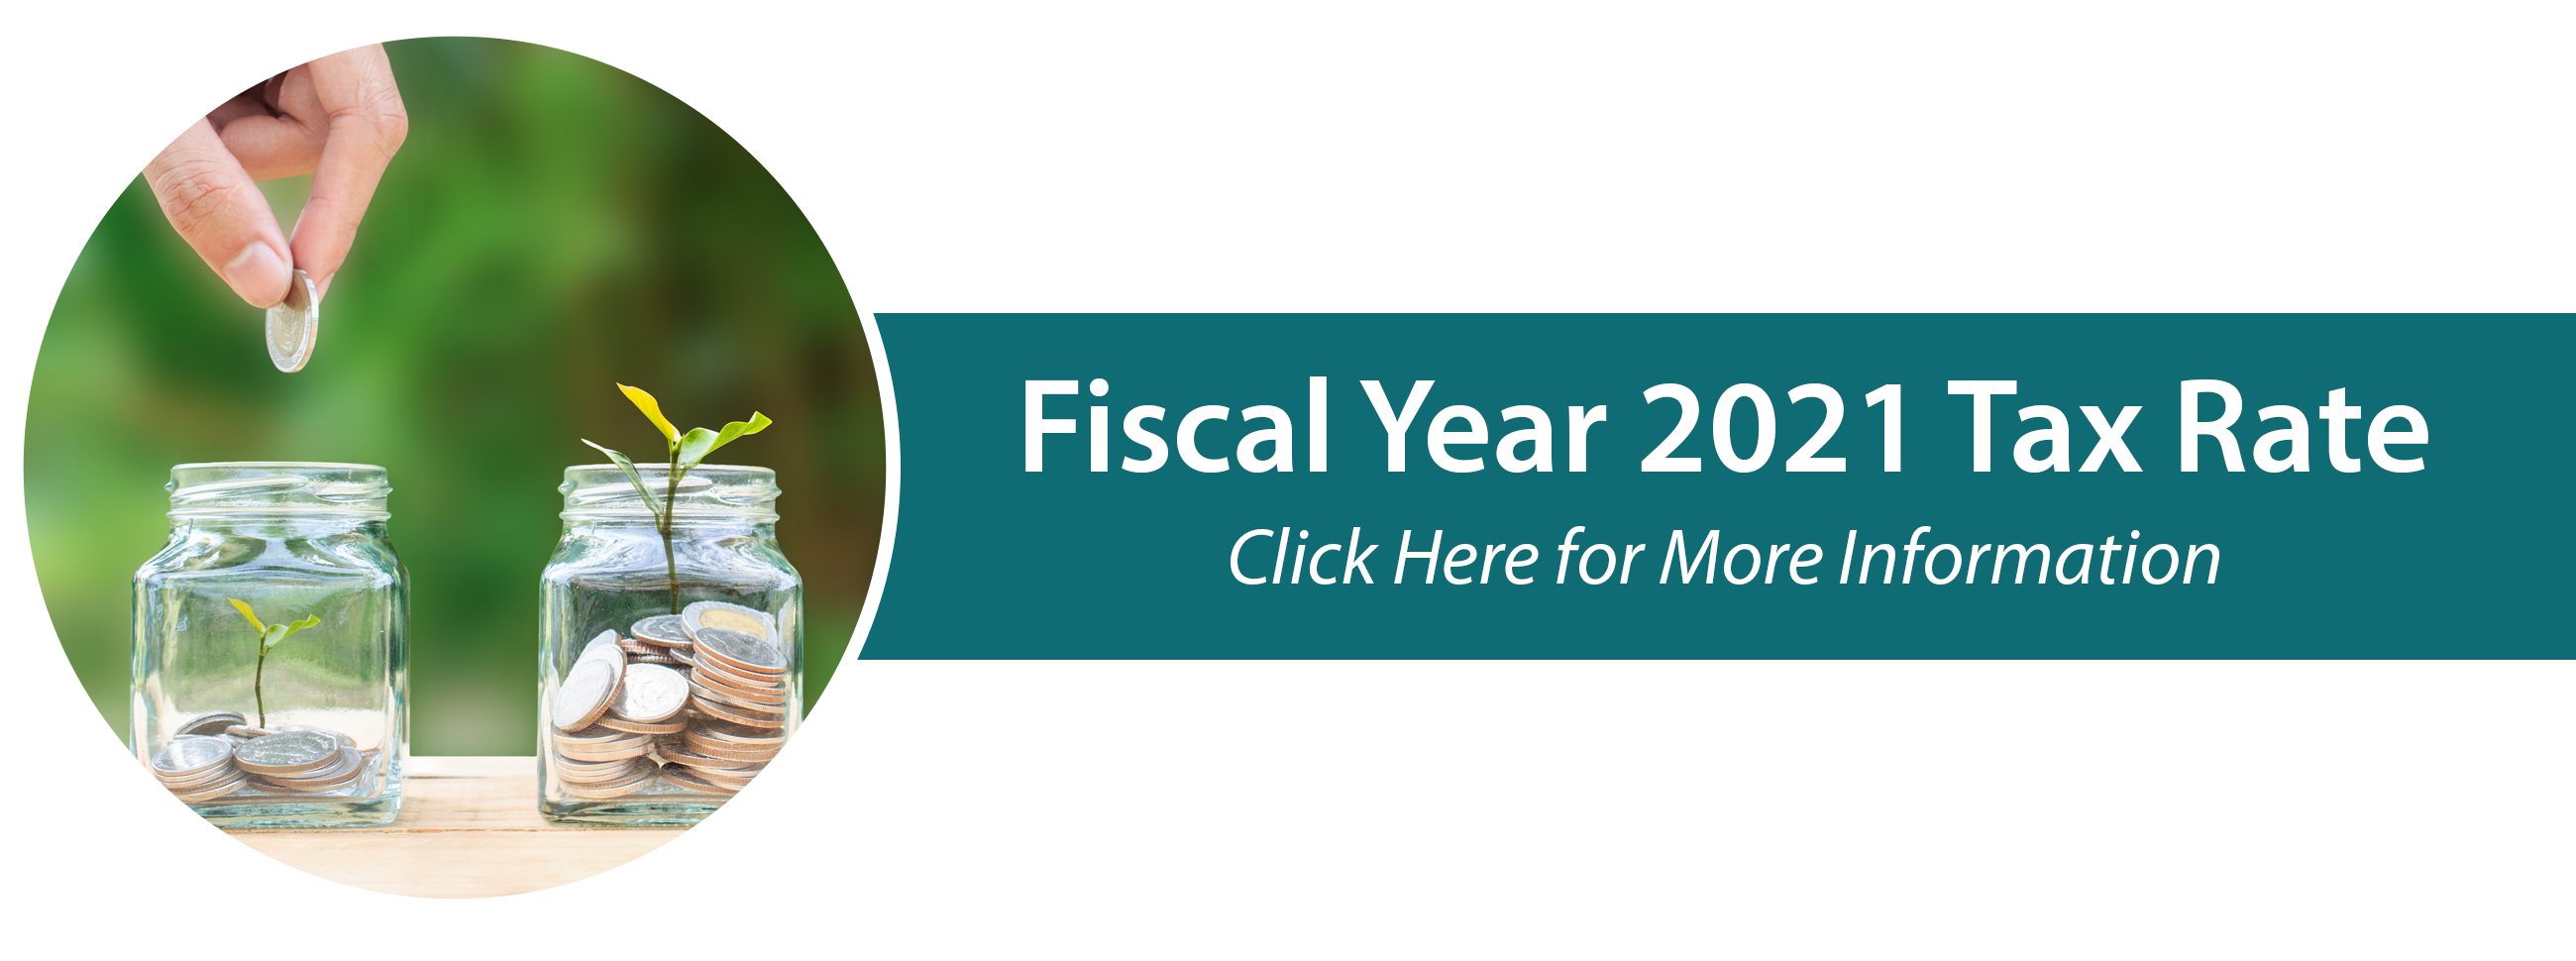 Fiscal Year 2021 Tax Rate: Click here for more information